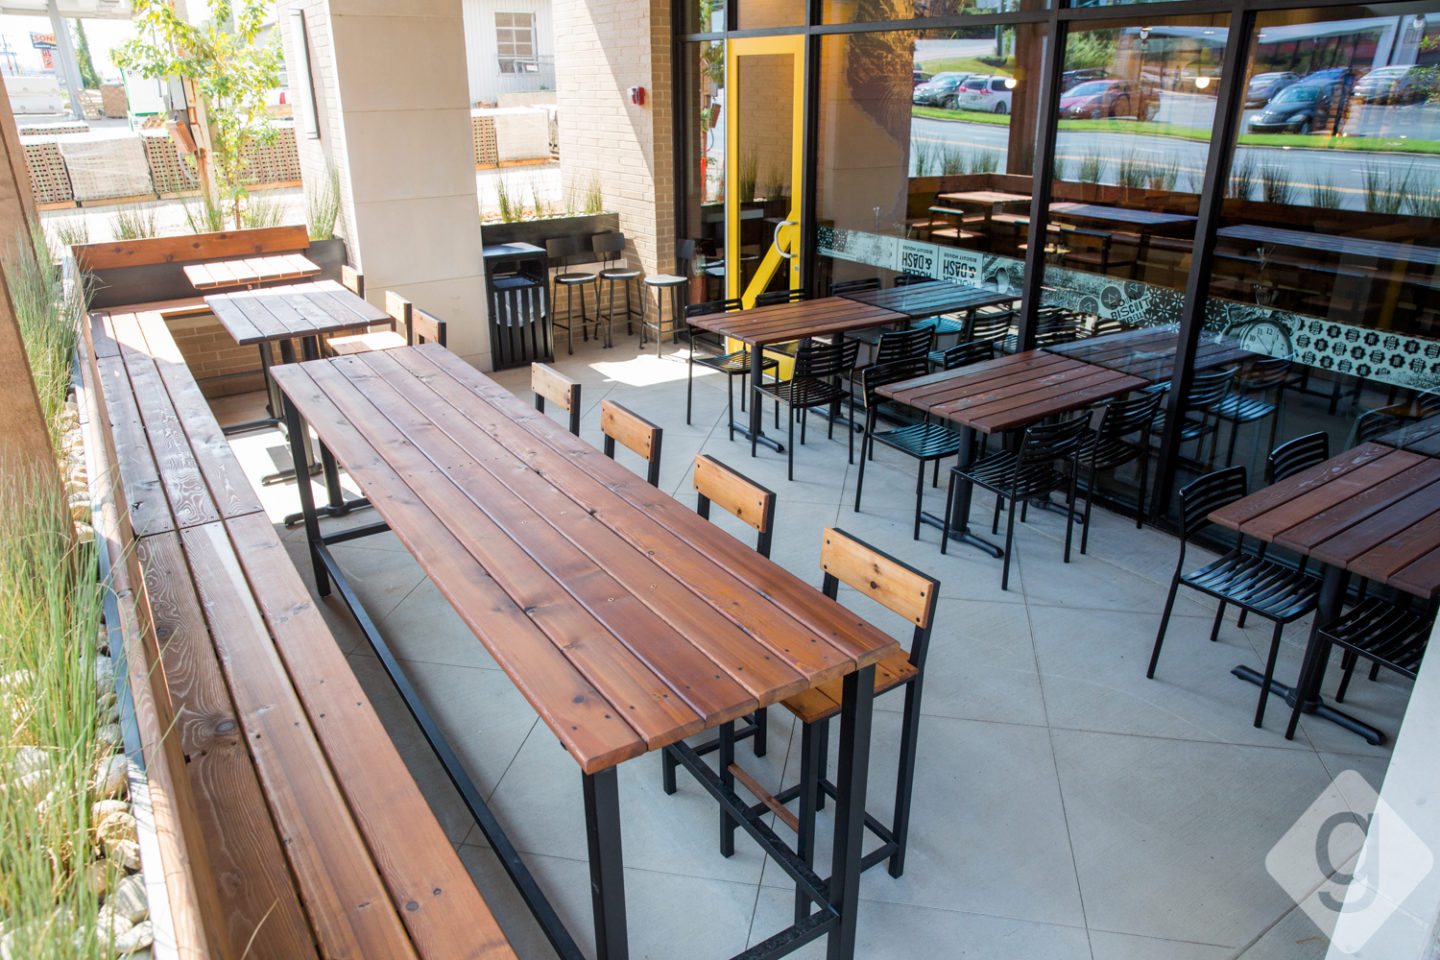 A Look Inside Holler Dash Nashville Guru - Community table restaurant